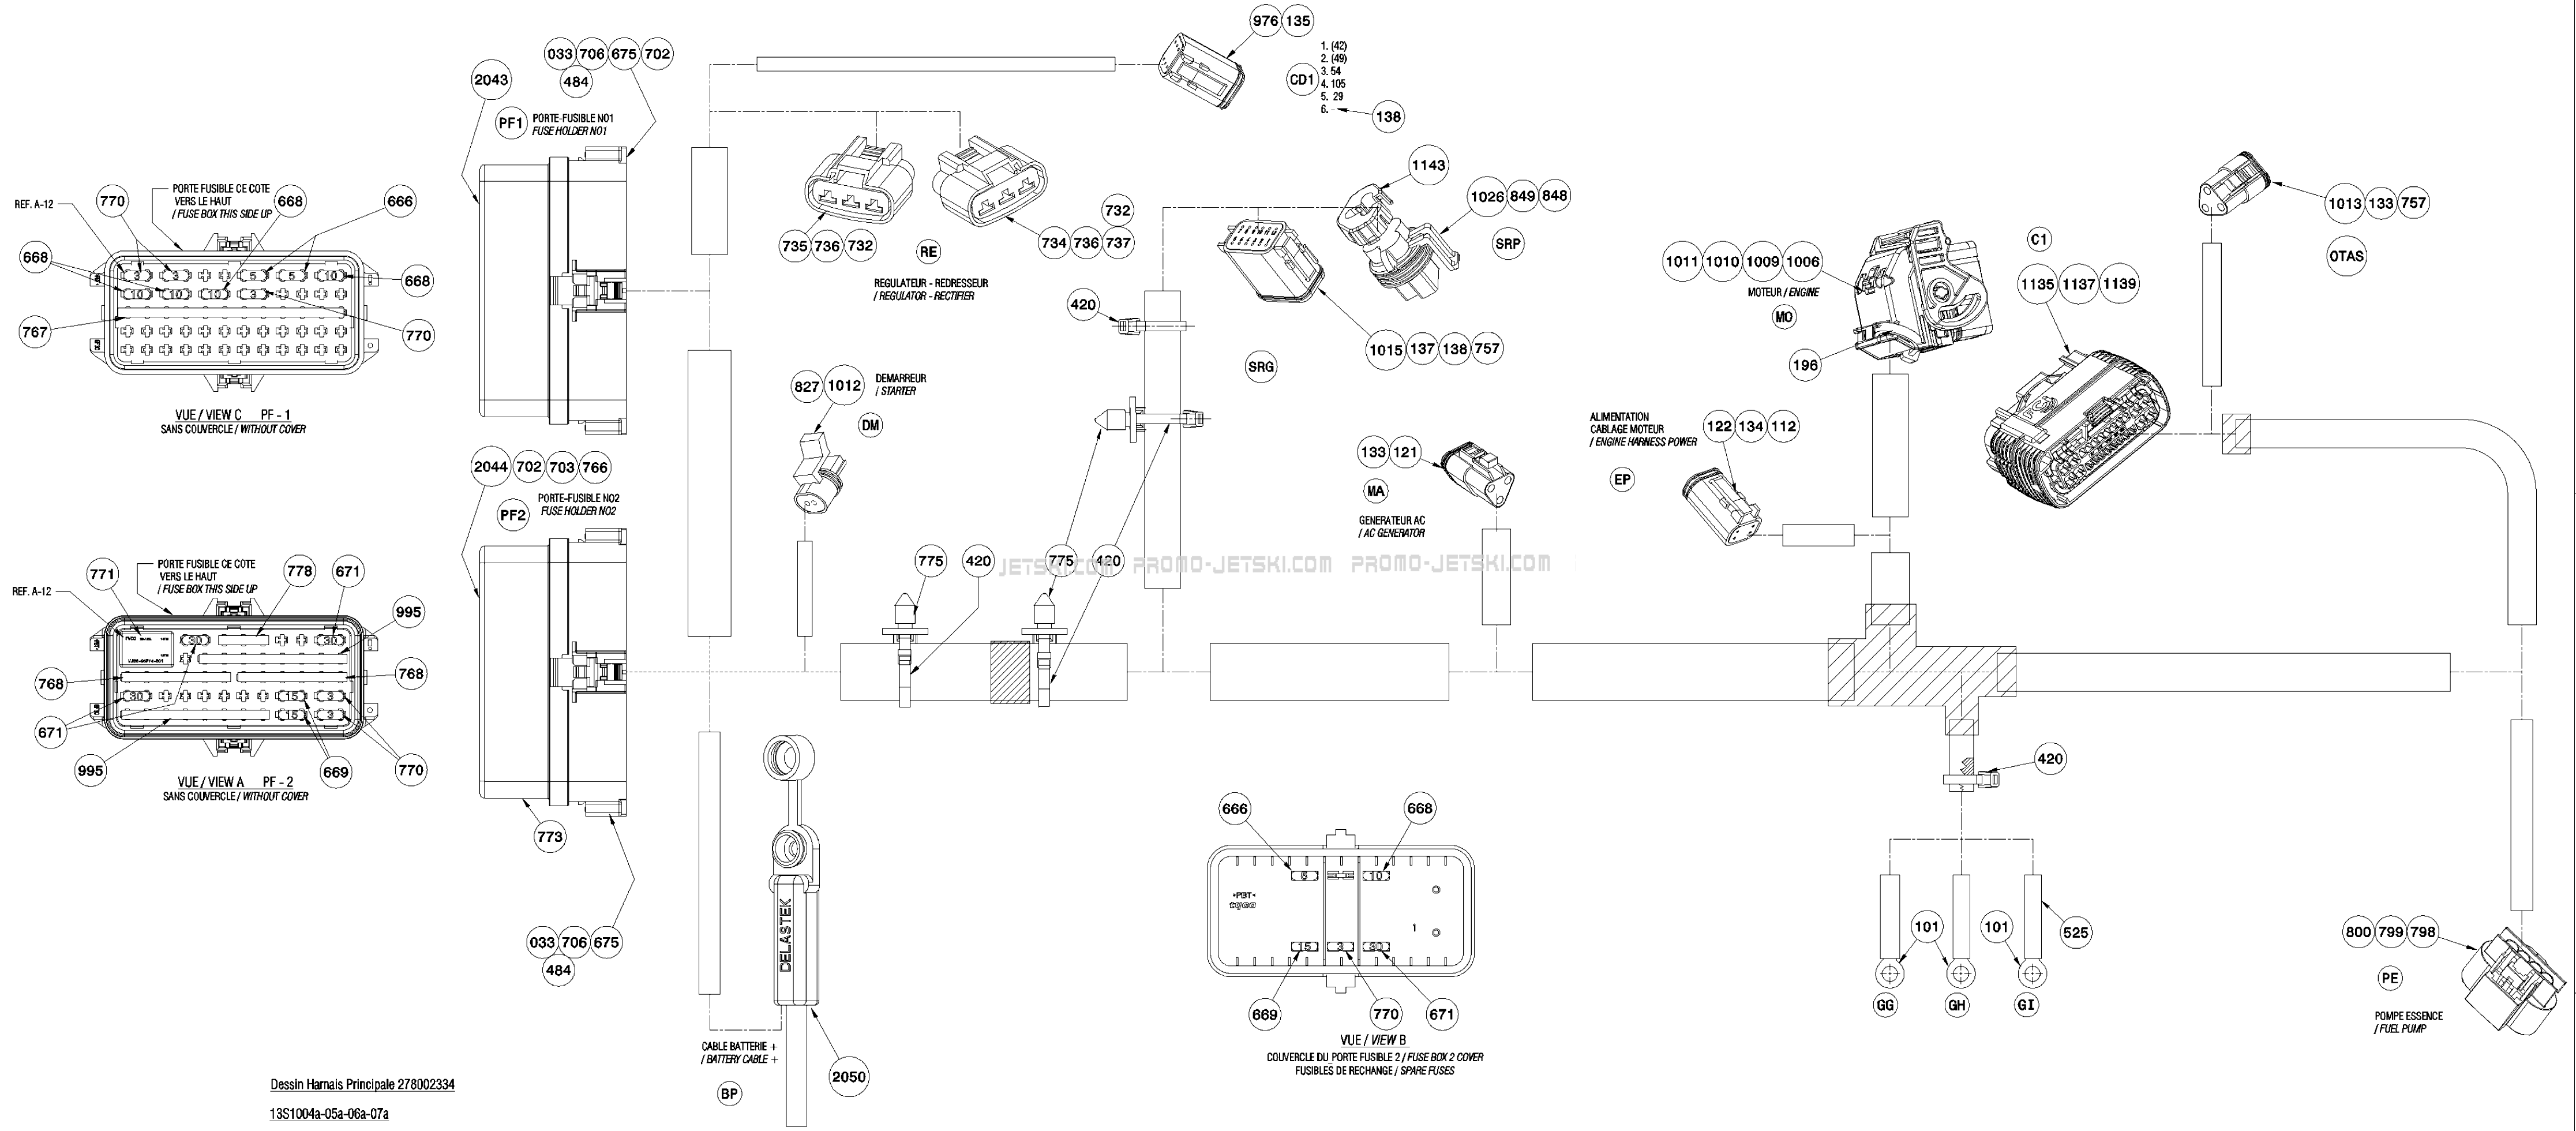 1999 Seadoo Gtx Electrical Schematic